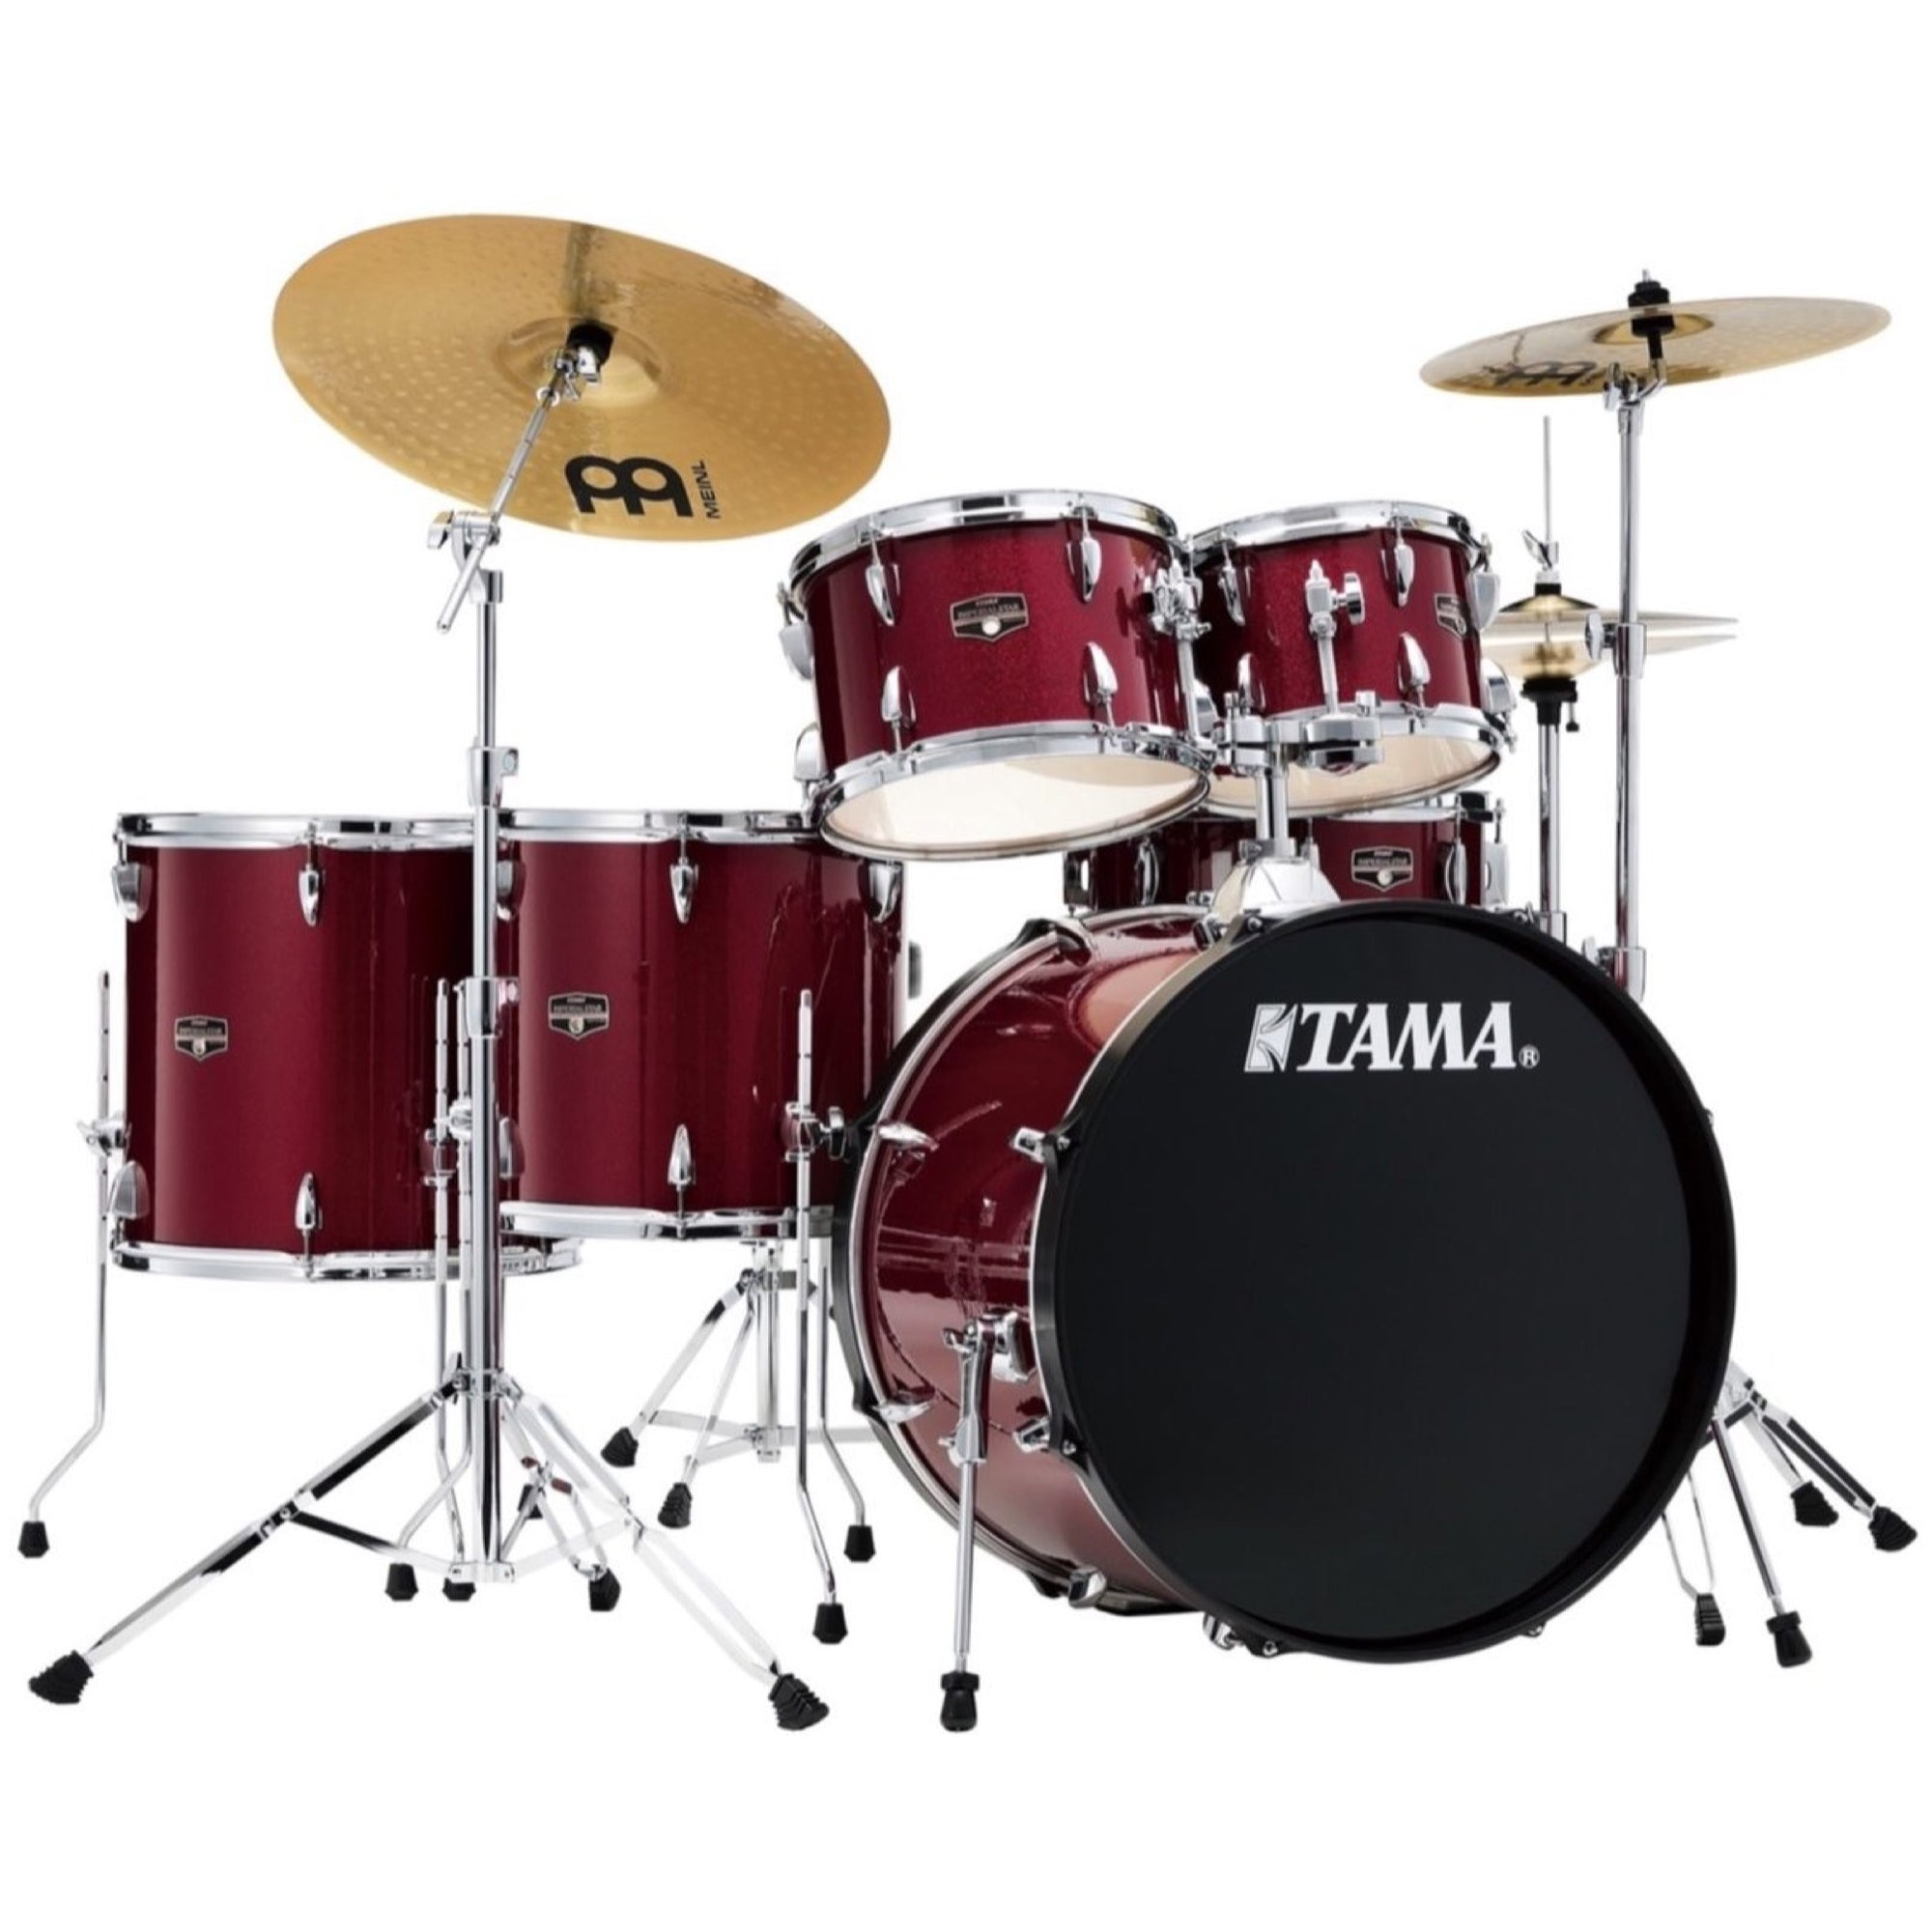 Tama IE62C Imperialstar Drum Kit, 6-Piece (with Meinl Cymbals), Candy Apple Mist